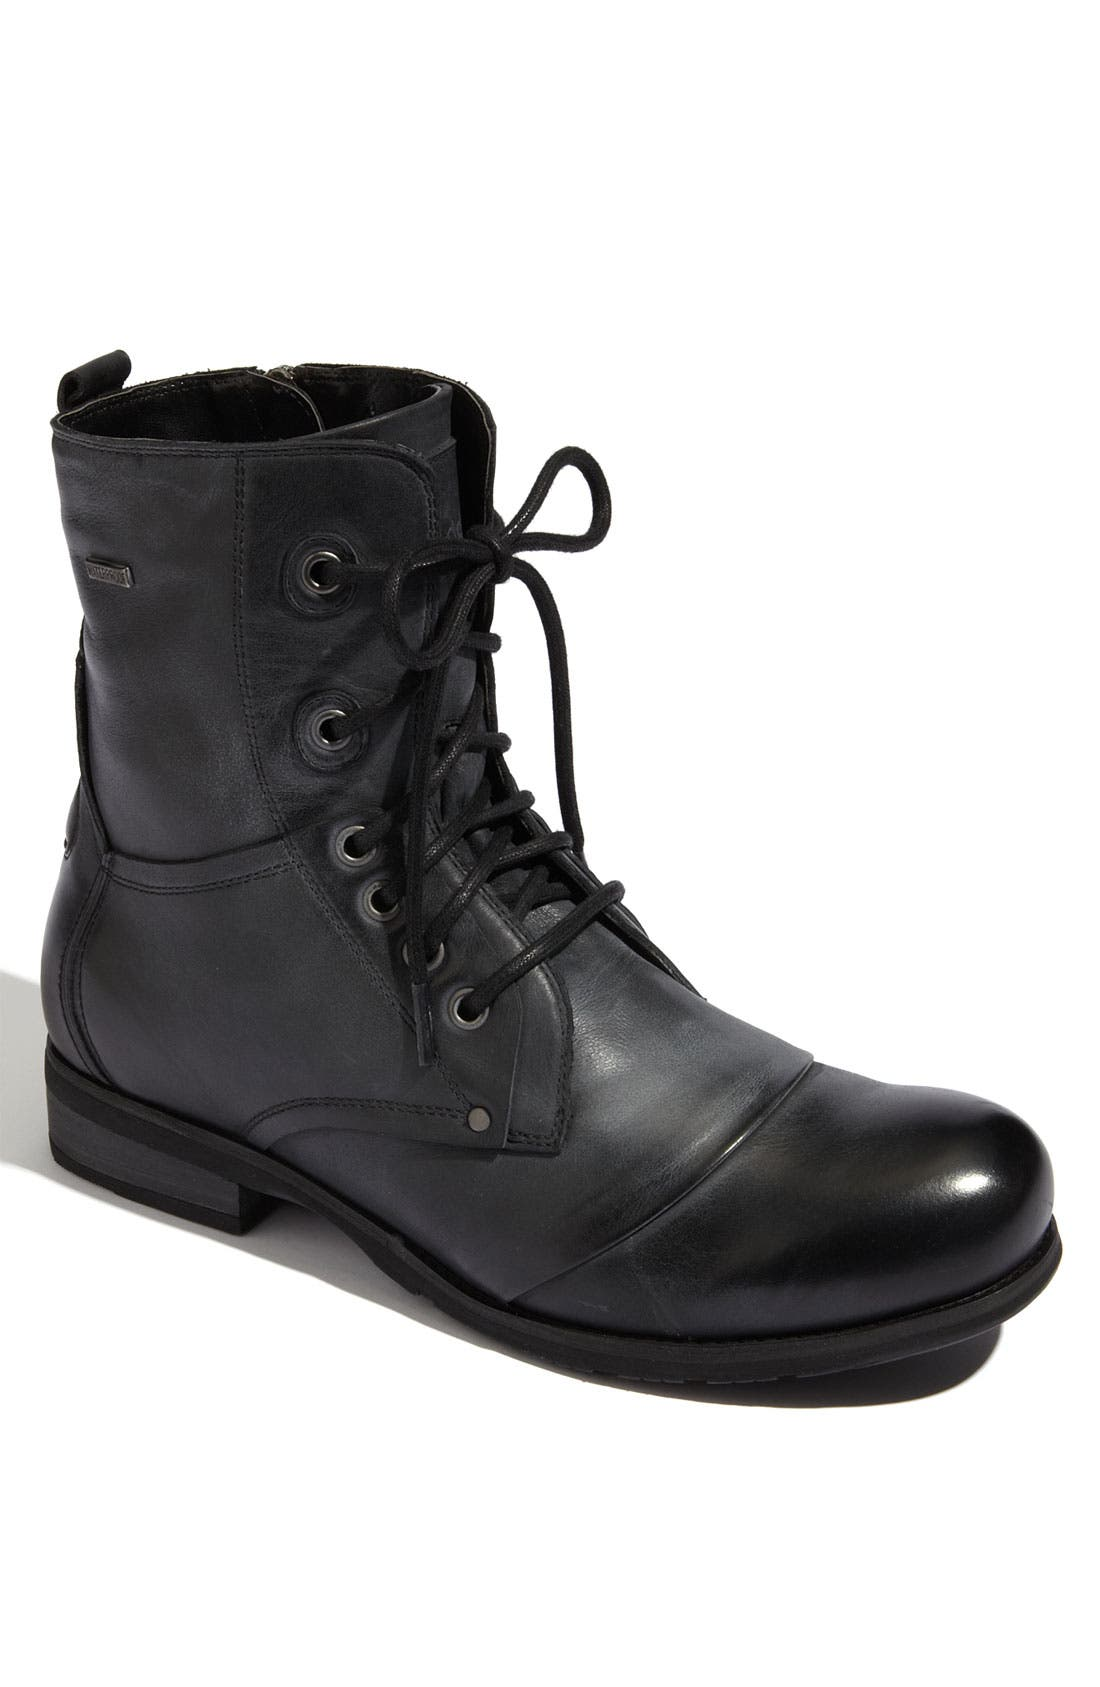 Alternate Image 1 Selected - Blondo 'Blunt' Waterproof Boot (Online Only)